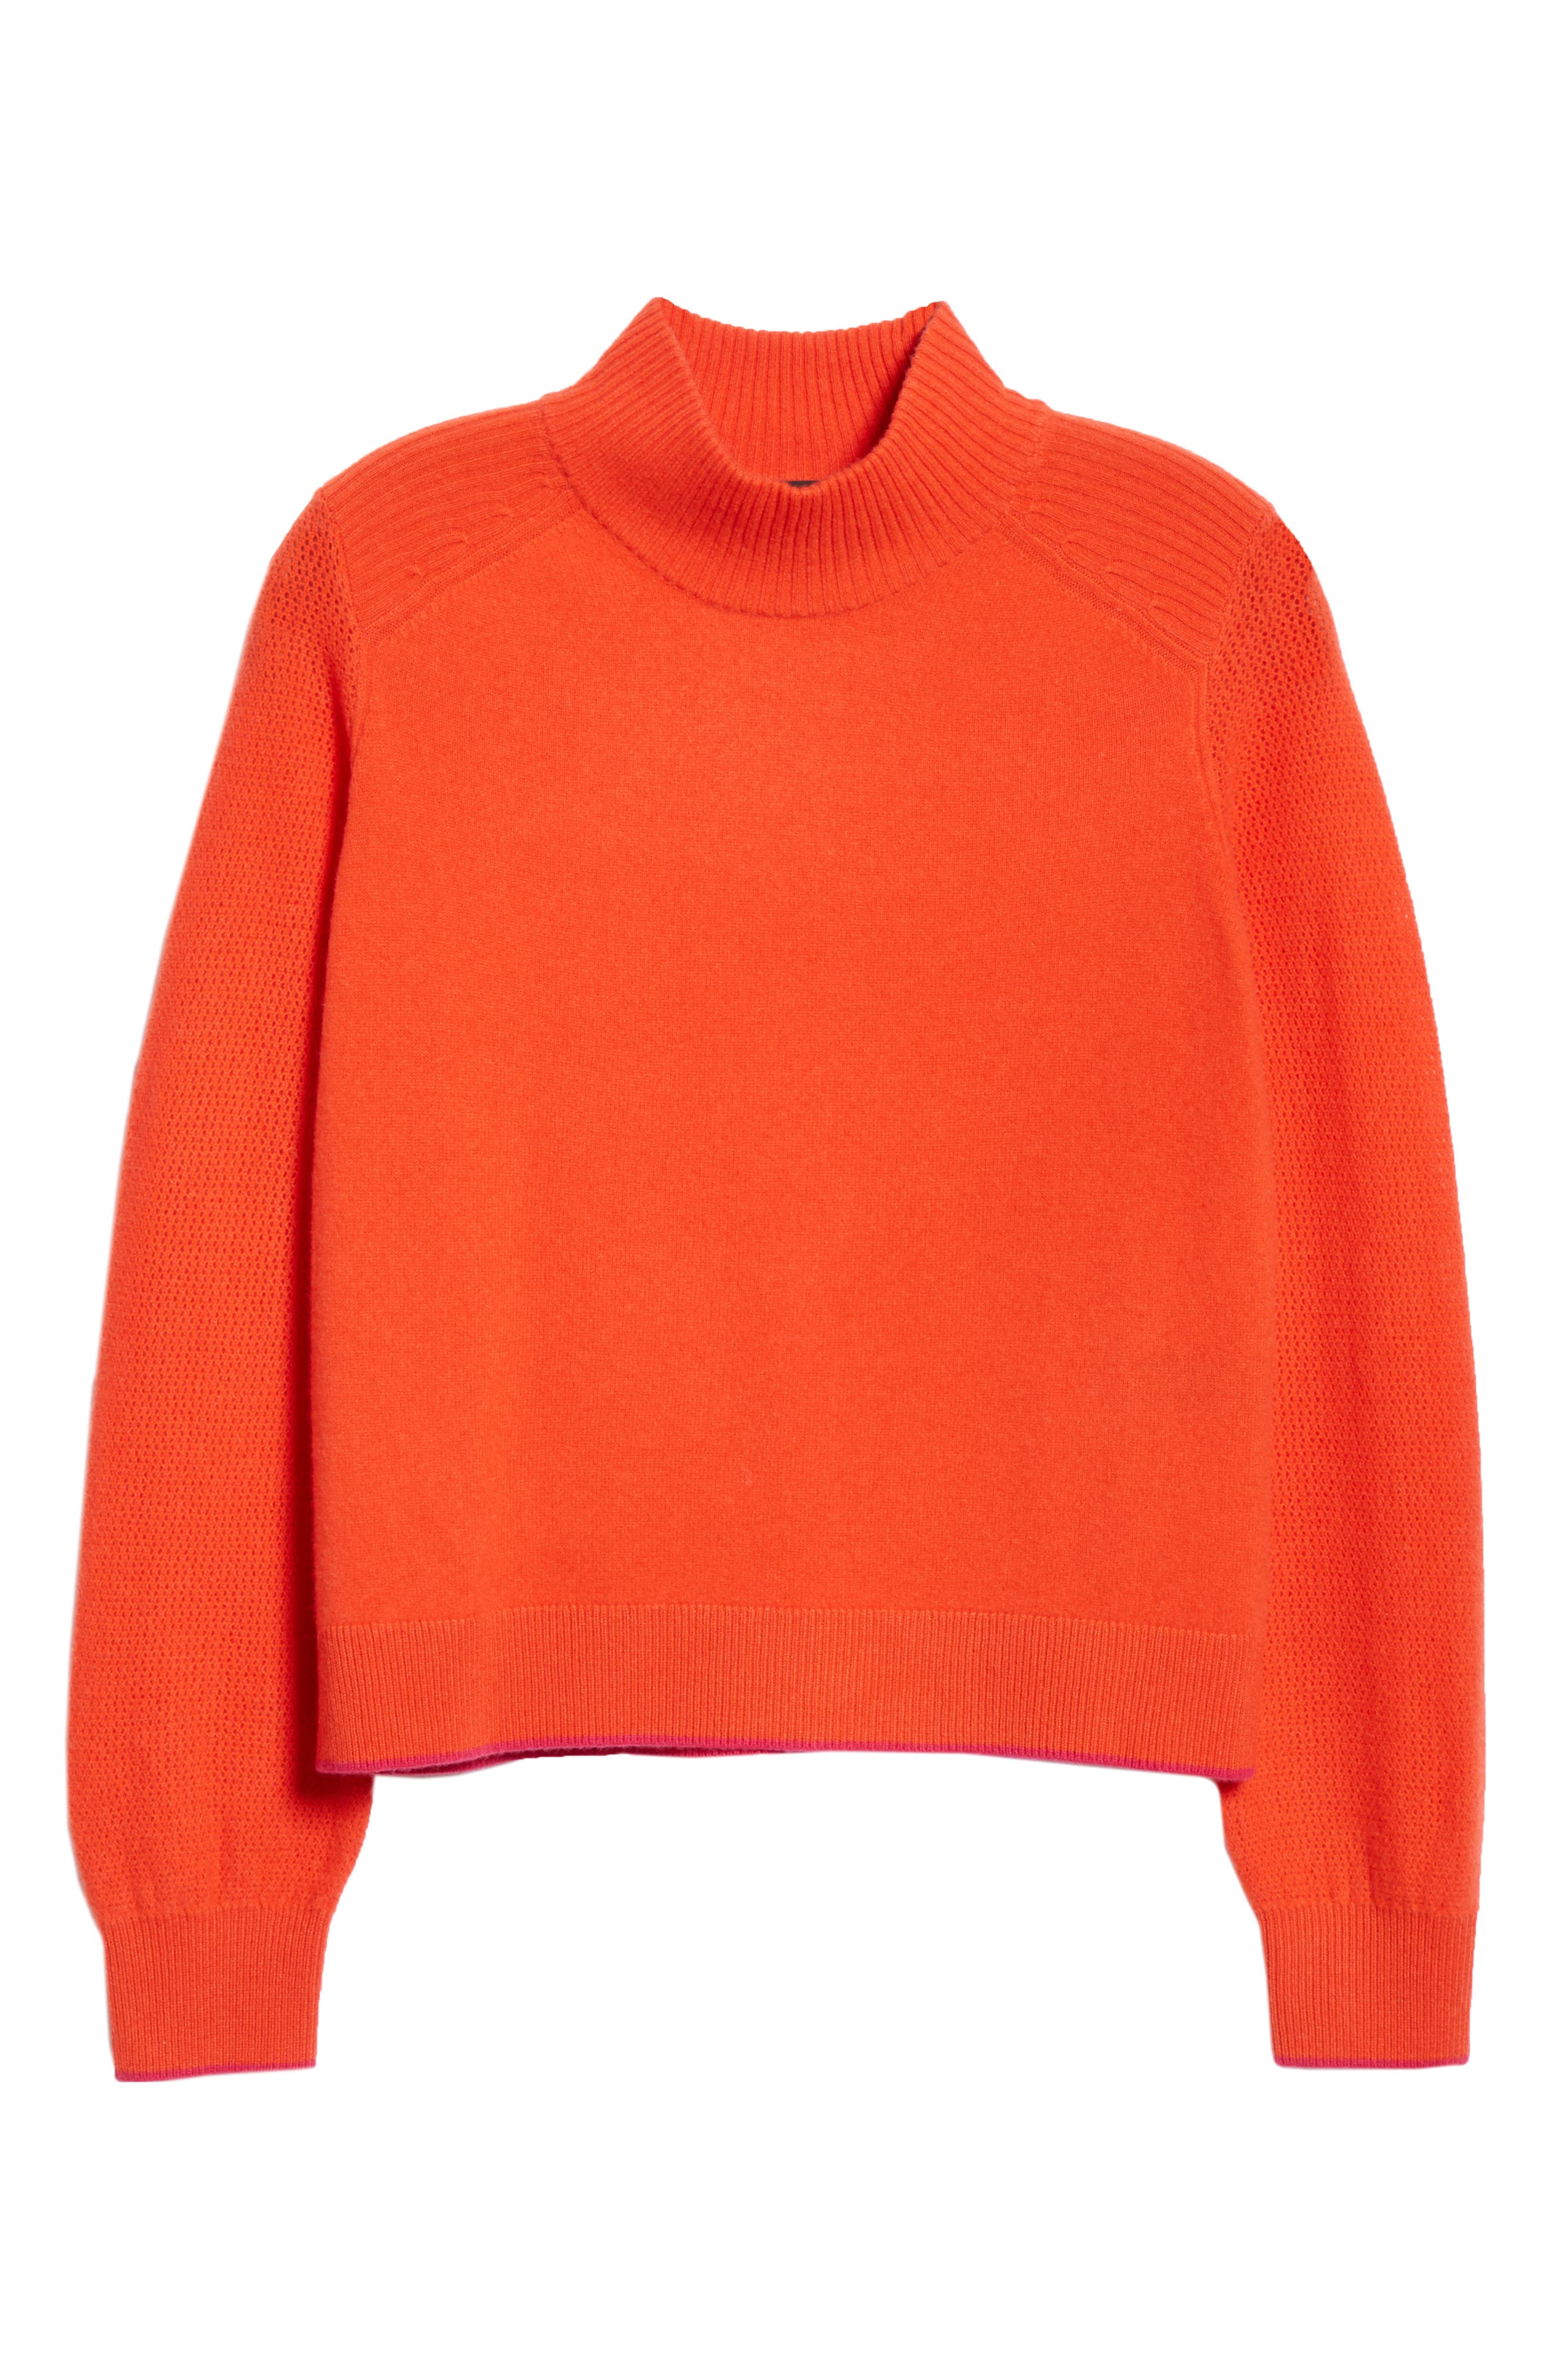 Yorke Cashmere Sweater,                             Alternate thumbnail 6, color,                             RED